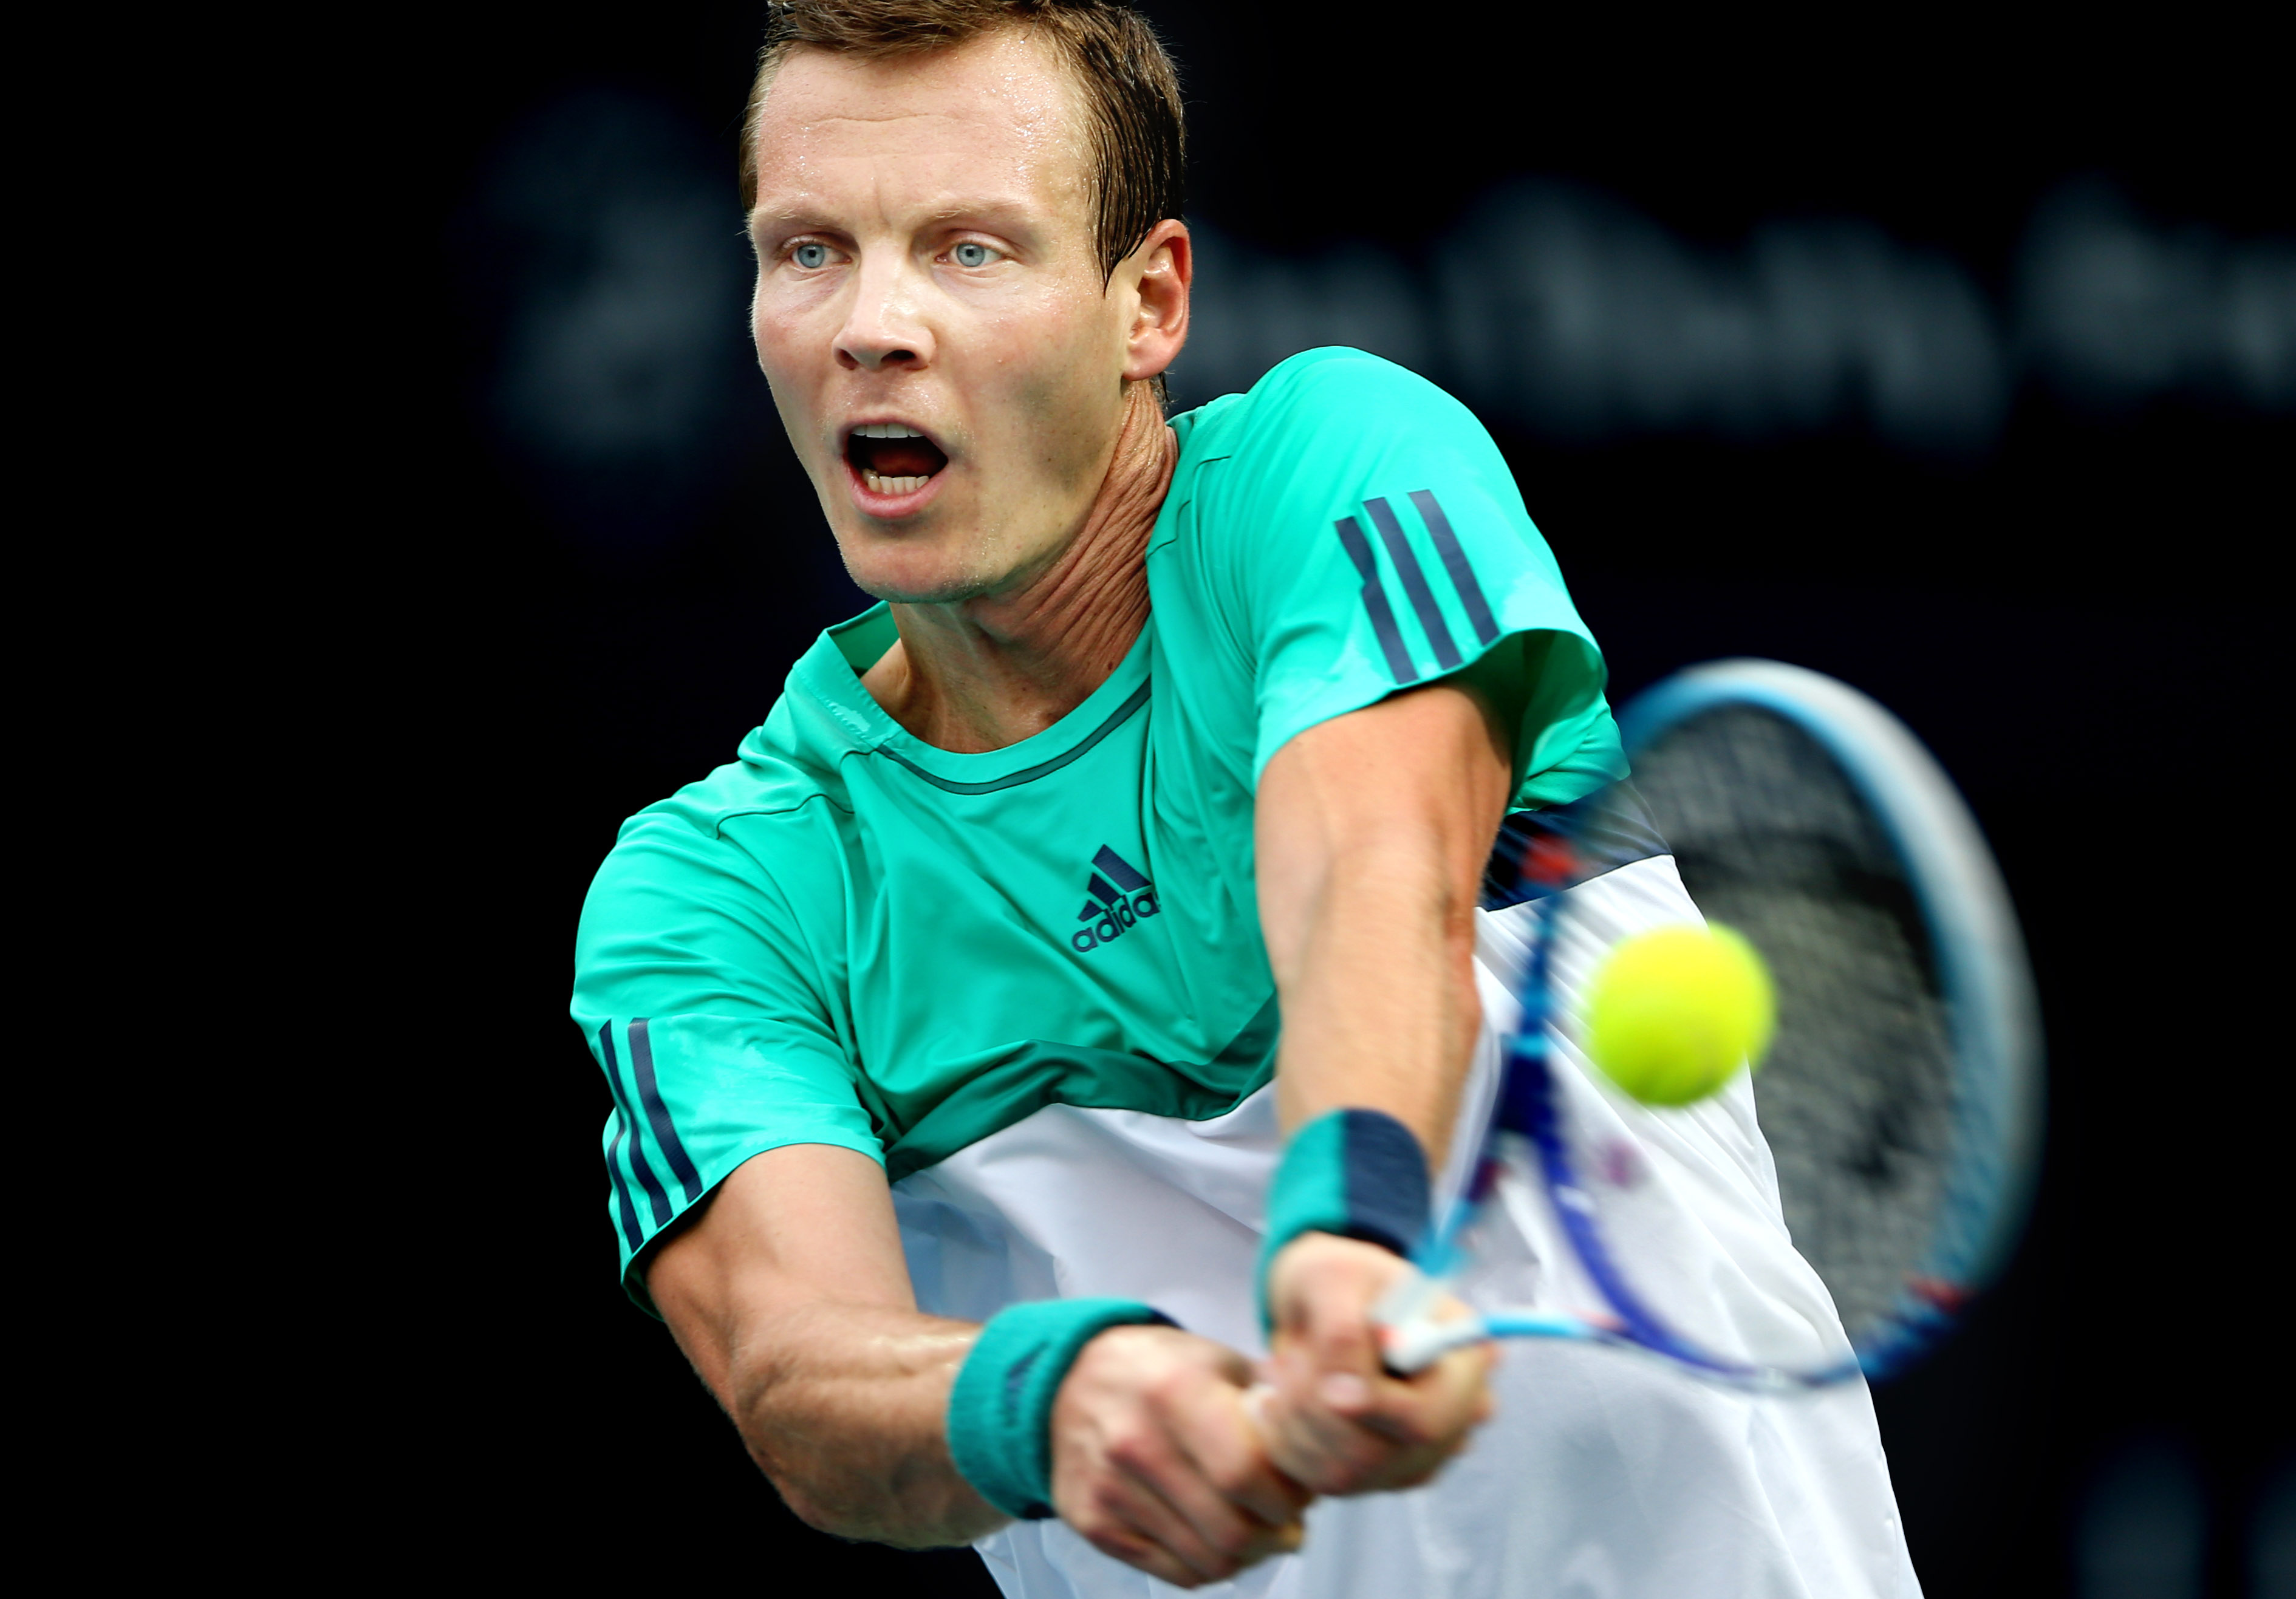 Tomas Berdych from Czech Republic returns the ball to Thomas Fabbiano from Italy during the 3rd day of Dubai Tennis Championships in Dubai, United Arab Emirates, Wednesday, Feb. 24, 2016. (AP Photo/Kamran Jebreili)